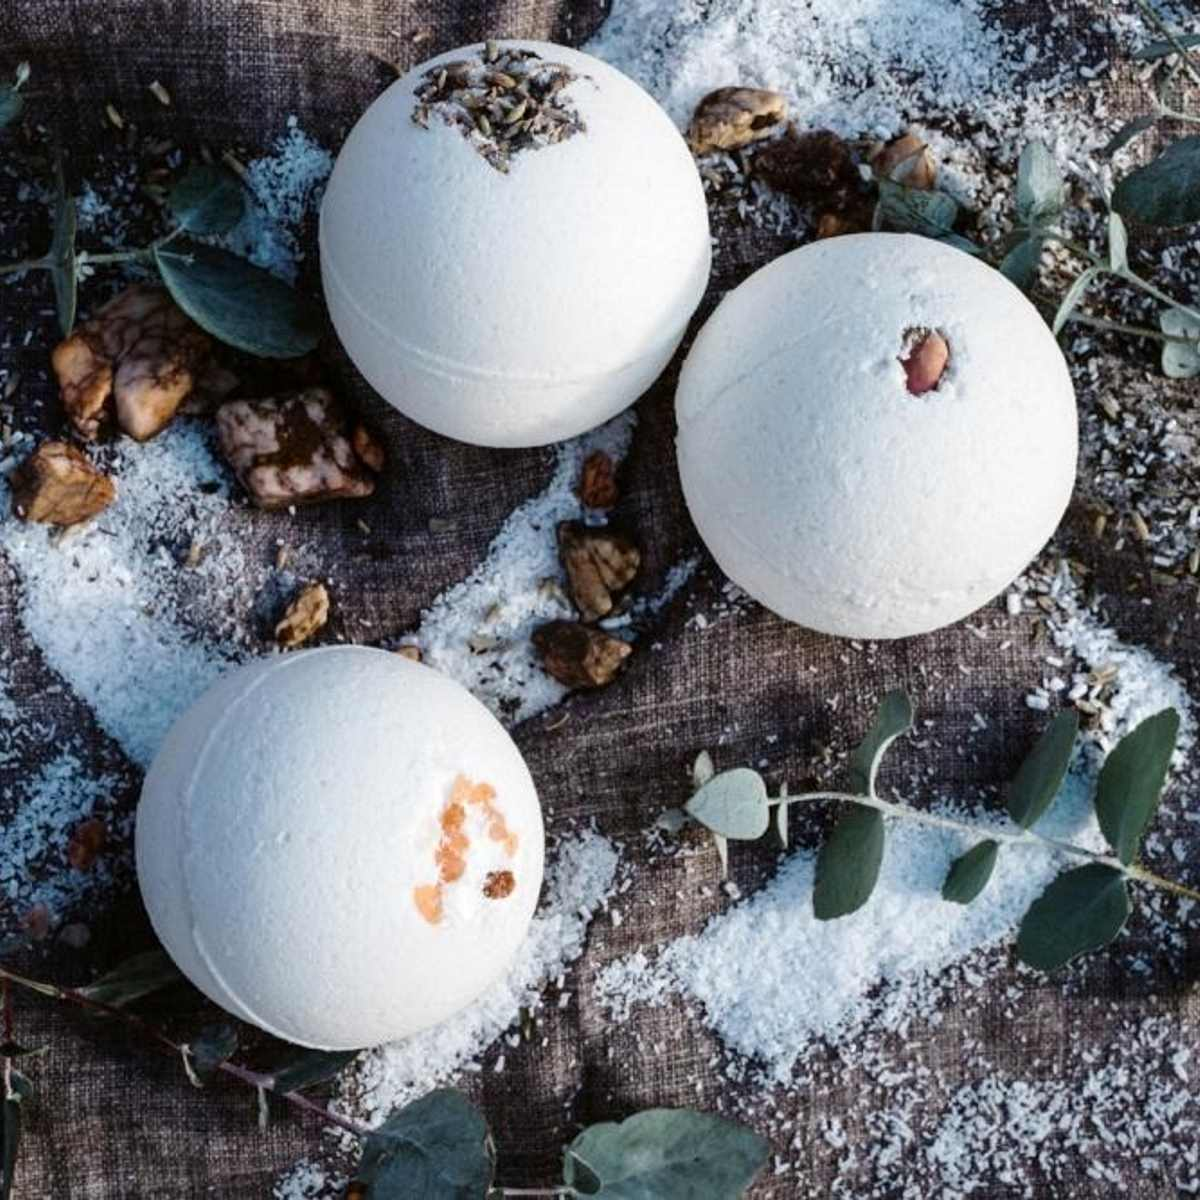 Handmade Bath Bombs - Urthly Organics - Bath Bomb - Throw Some Seeds - Australian gardening gifts and eco products online!